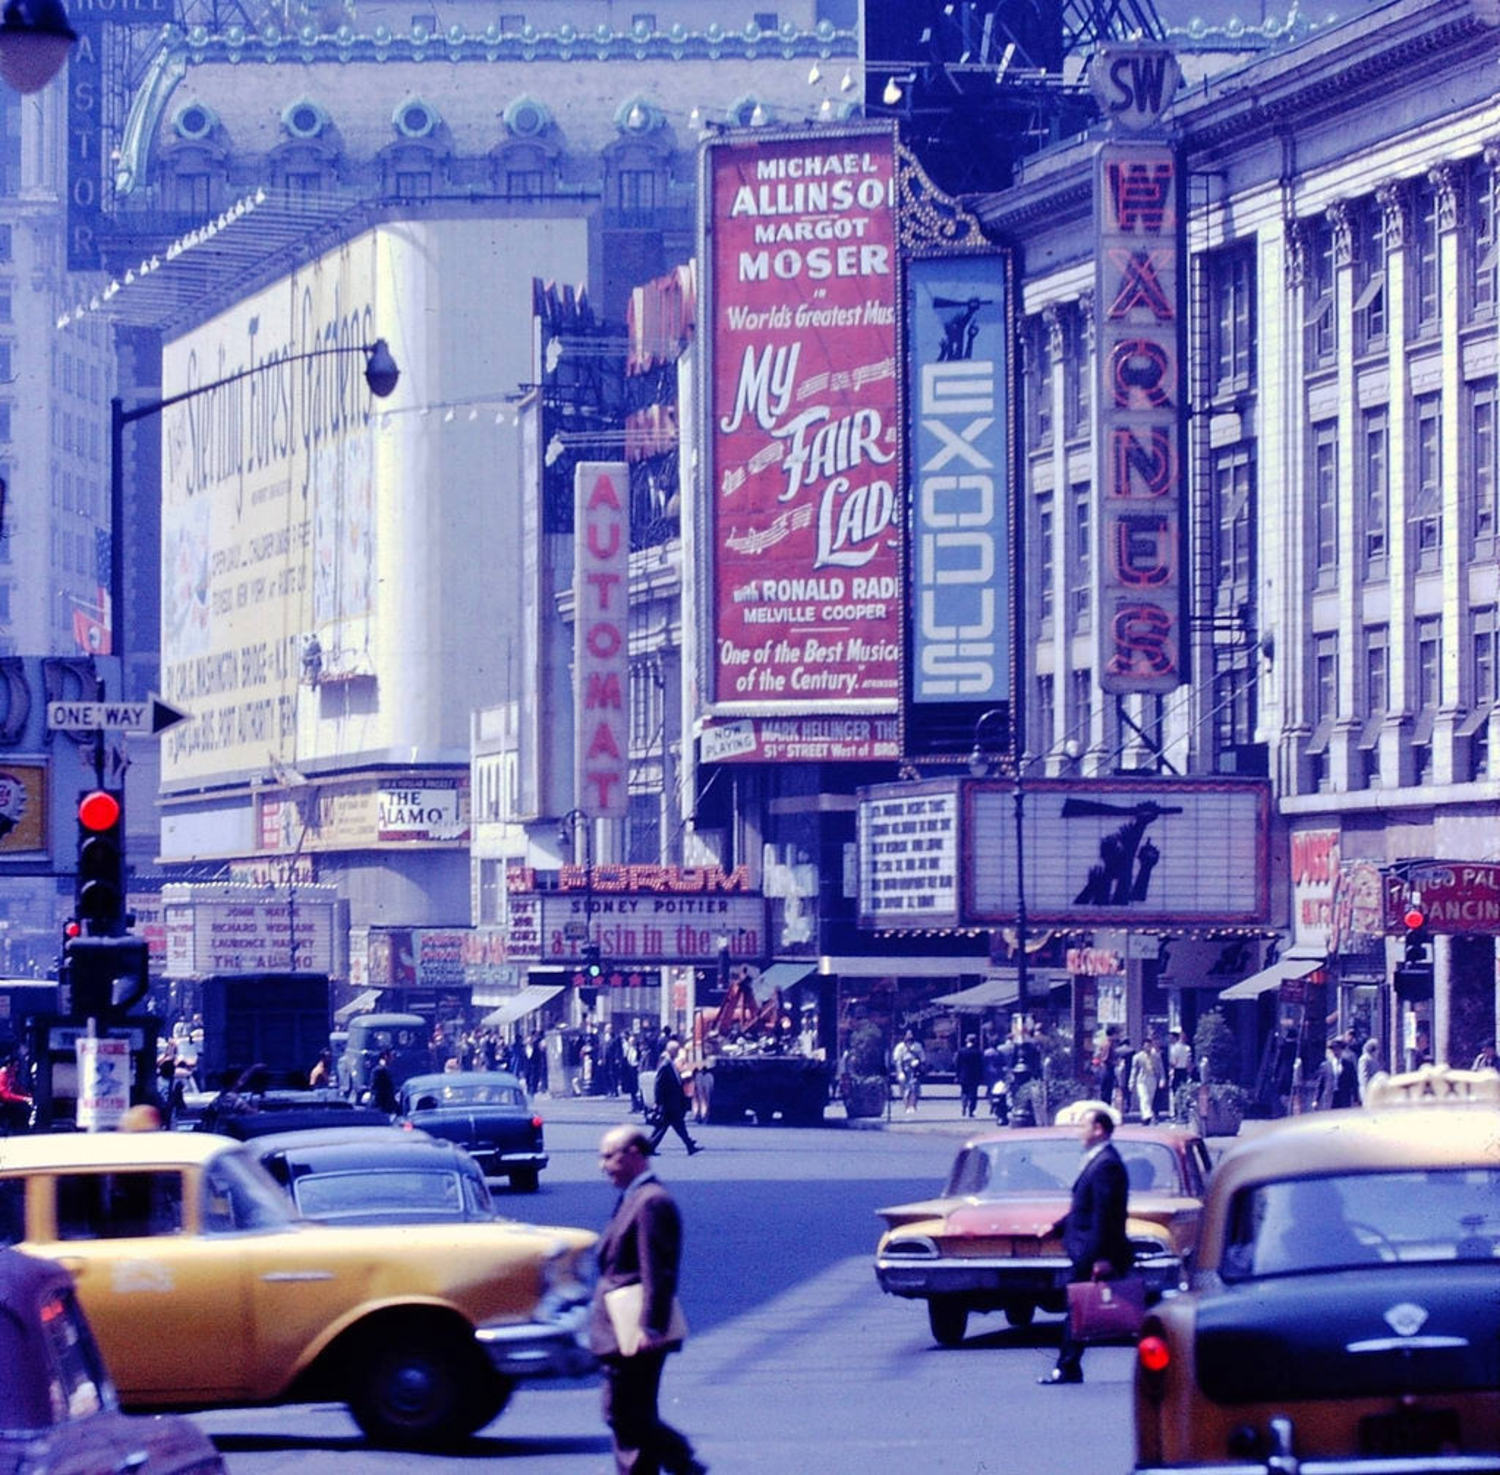 Times Square, New York, New York, 1961